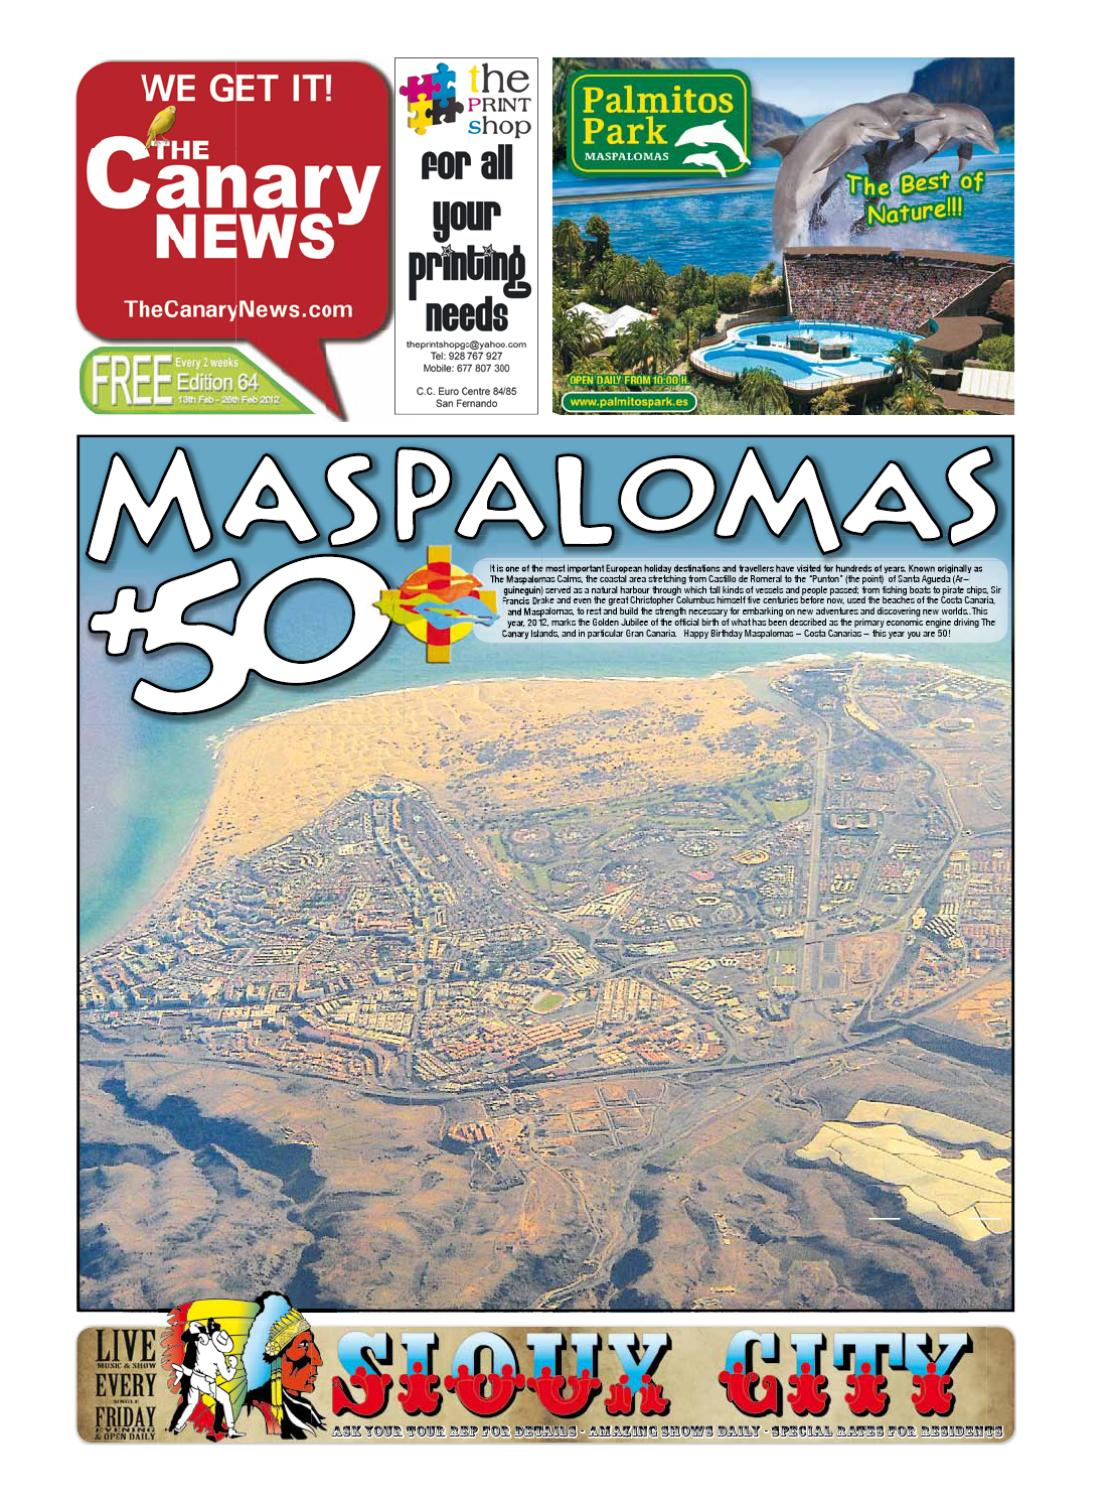 Edition 64 Maspalomas 50 By The Canary News Views Sunshine